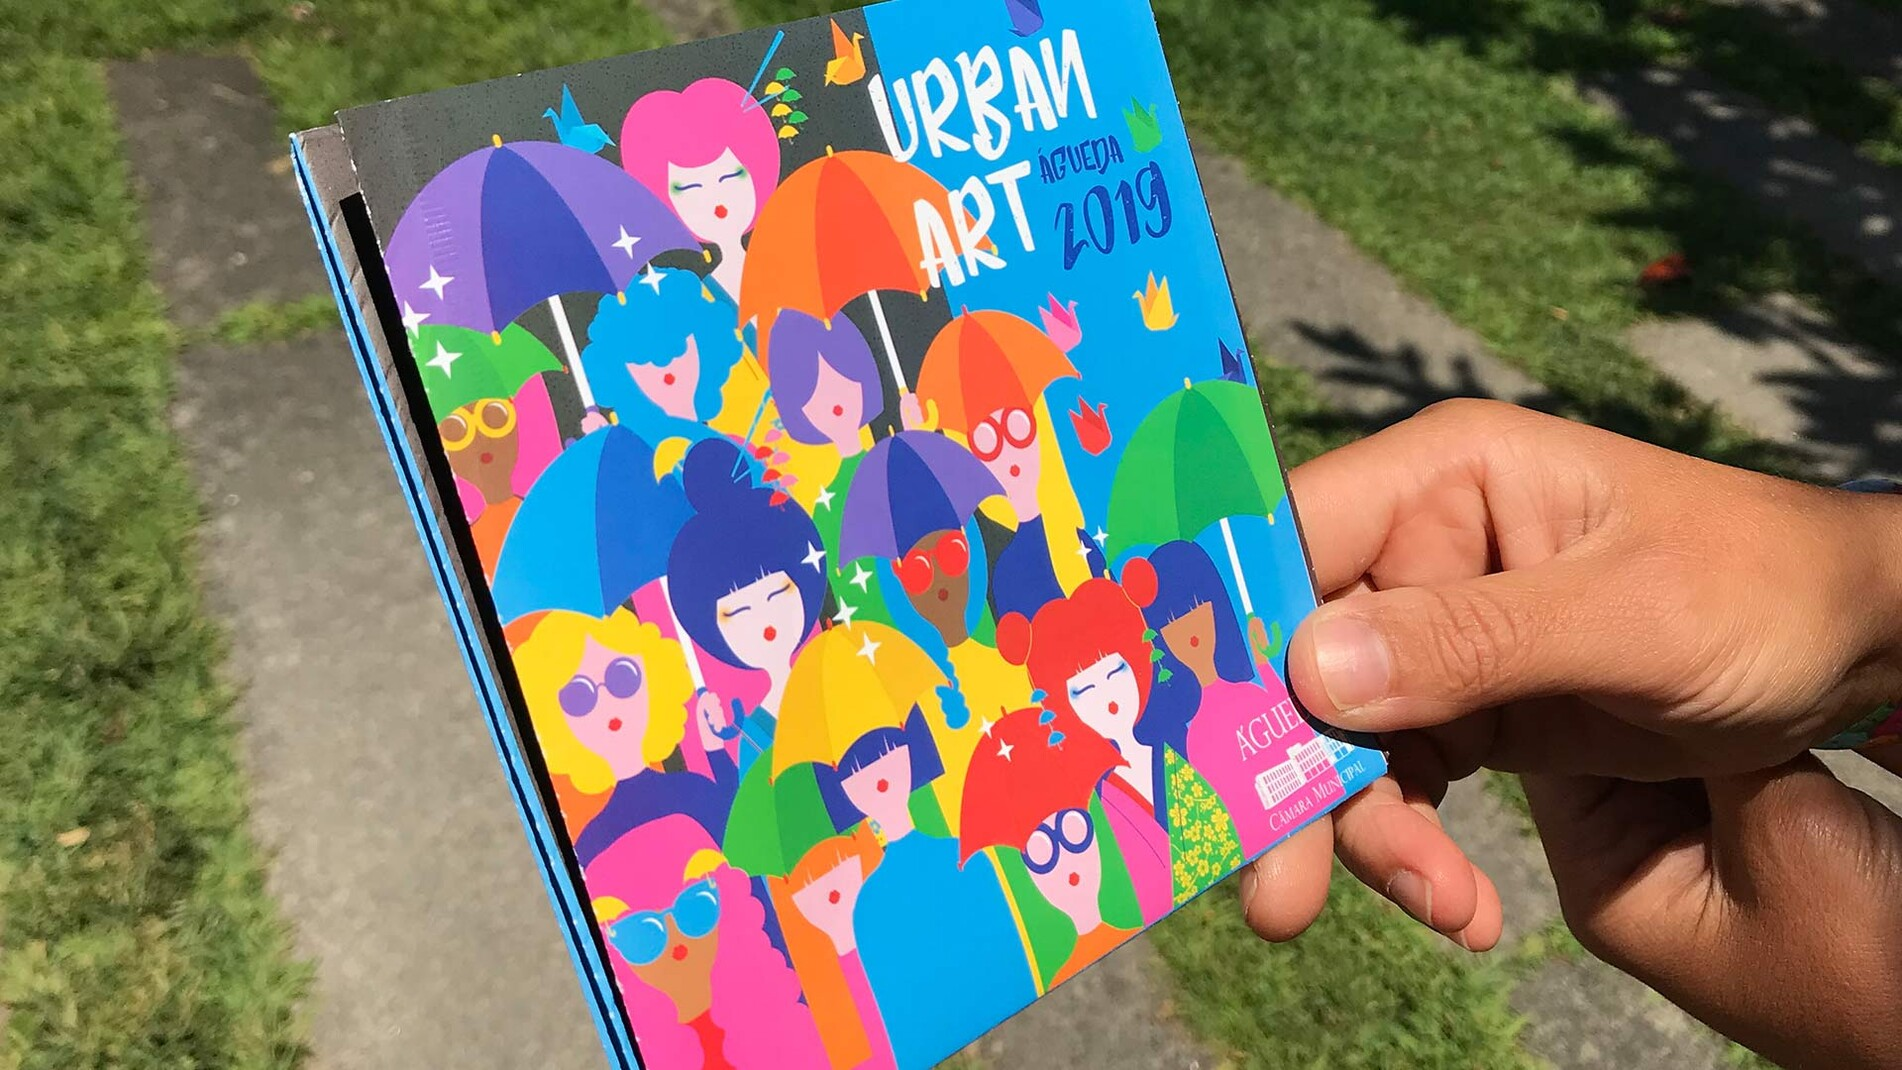 Urban Art Map'19